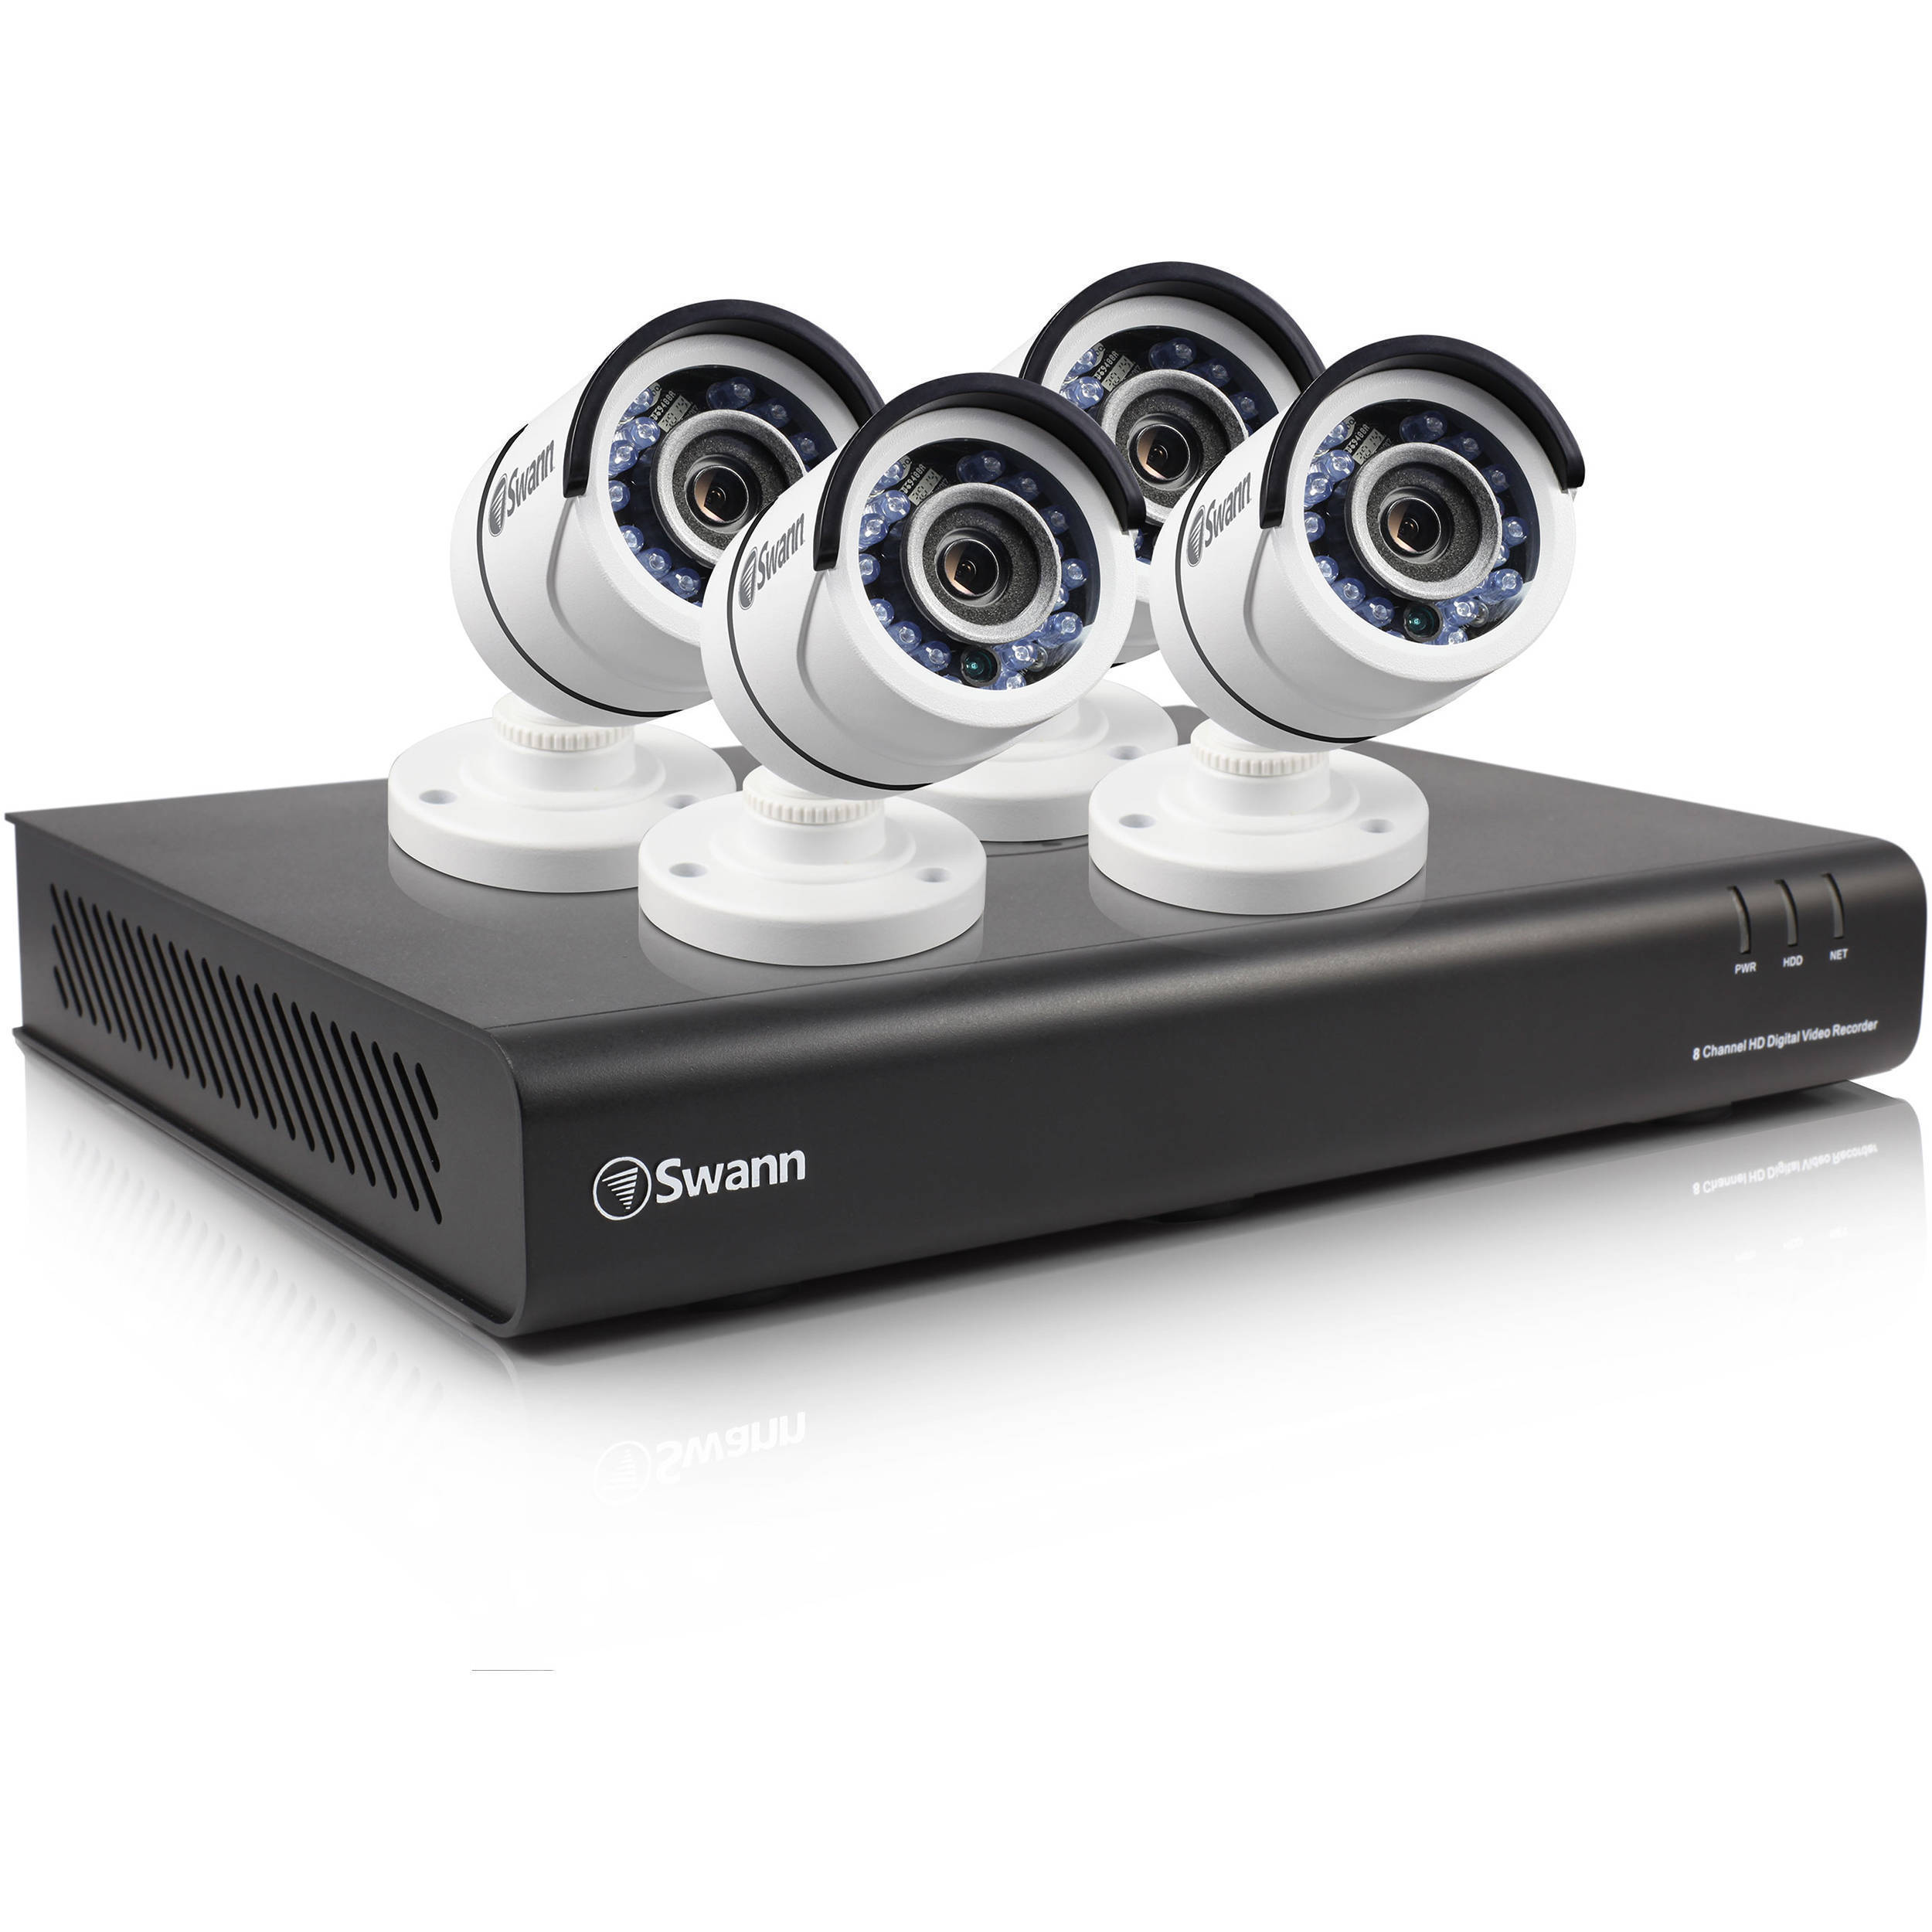 Swann Swdvk 845004 8 Channel 1080p Dvr With 1tb Swdvk